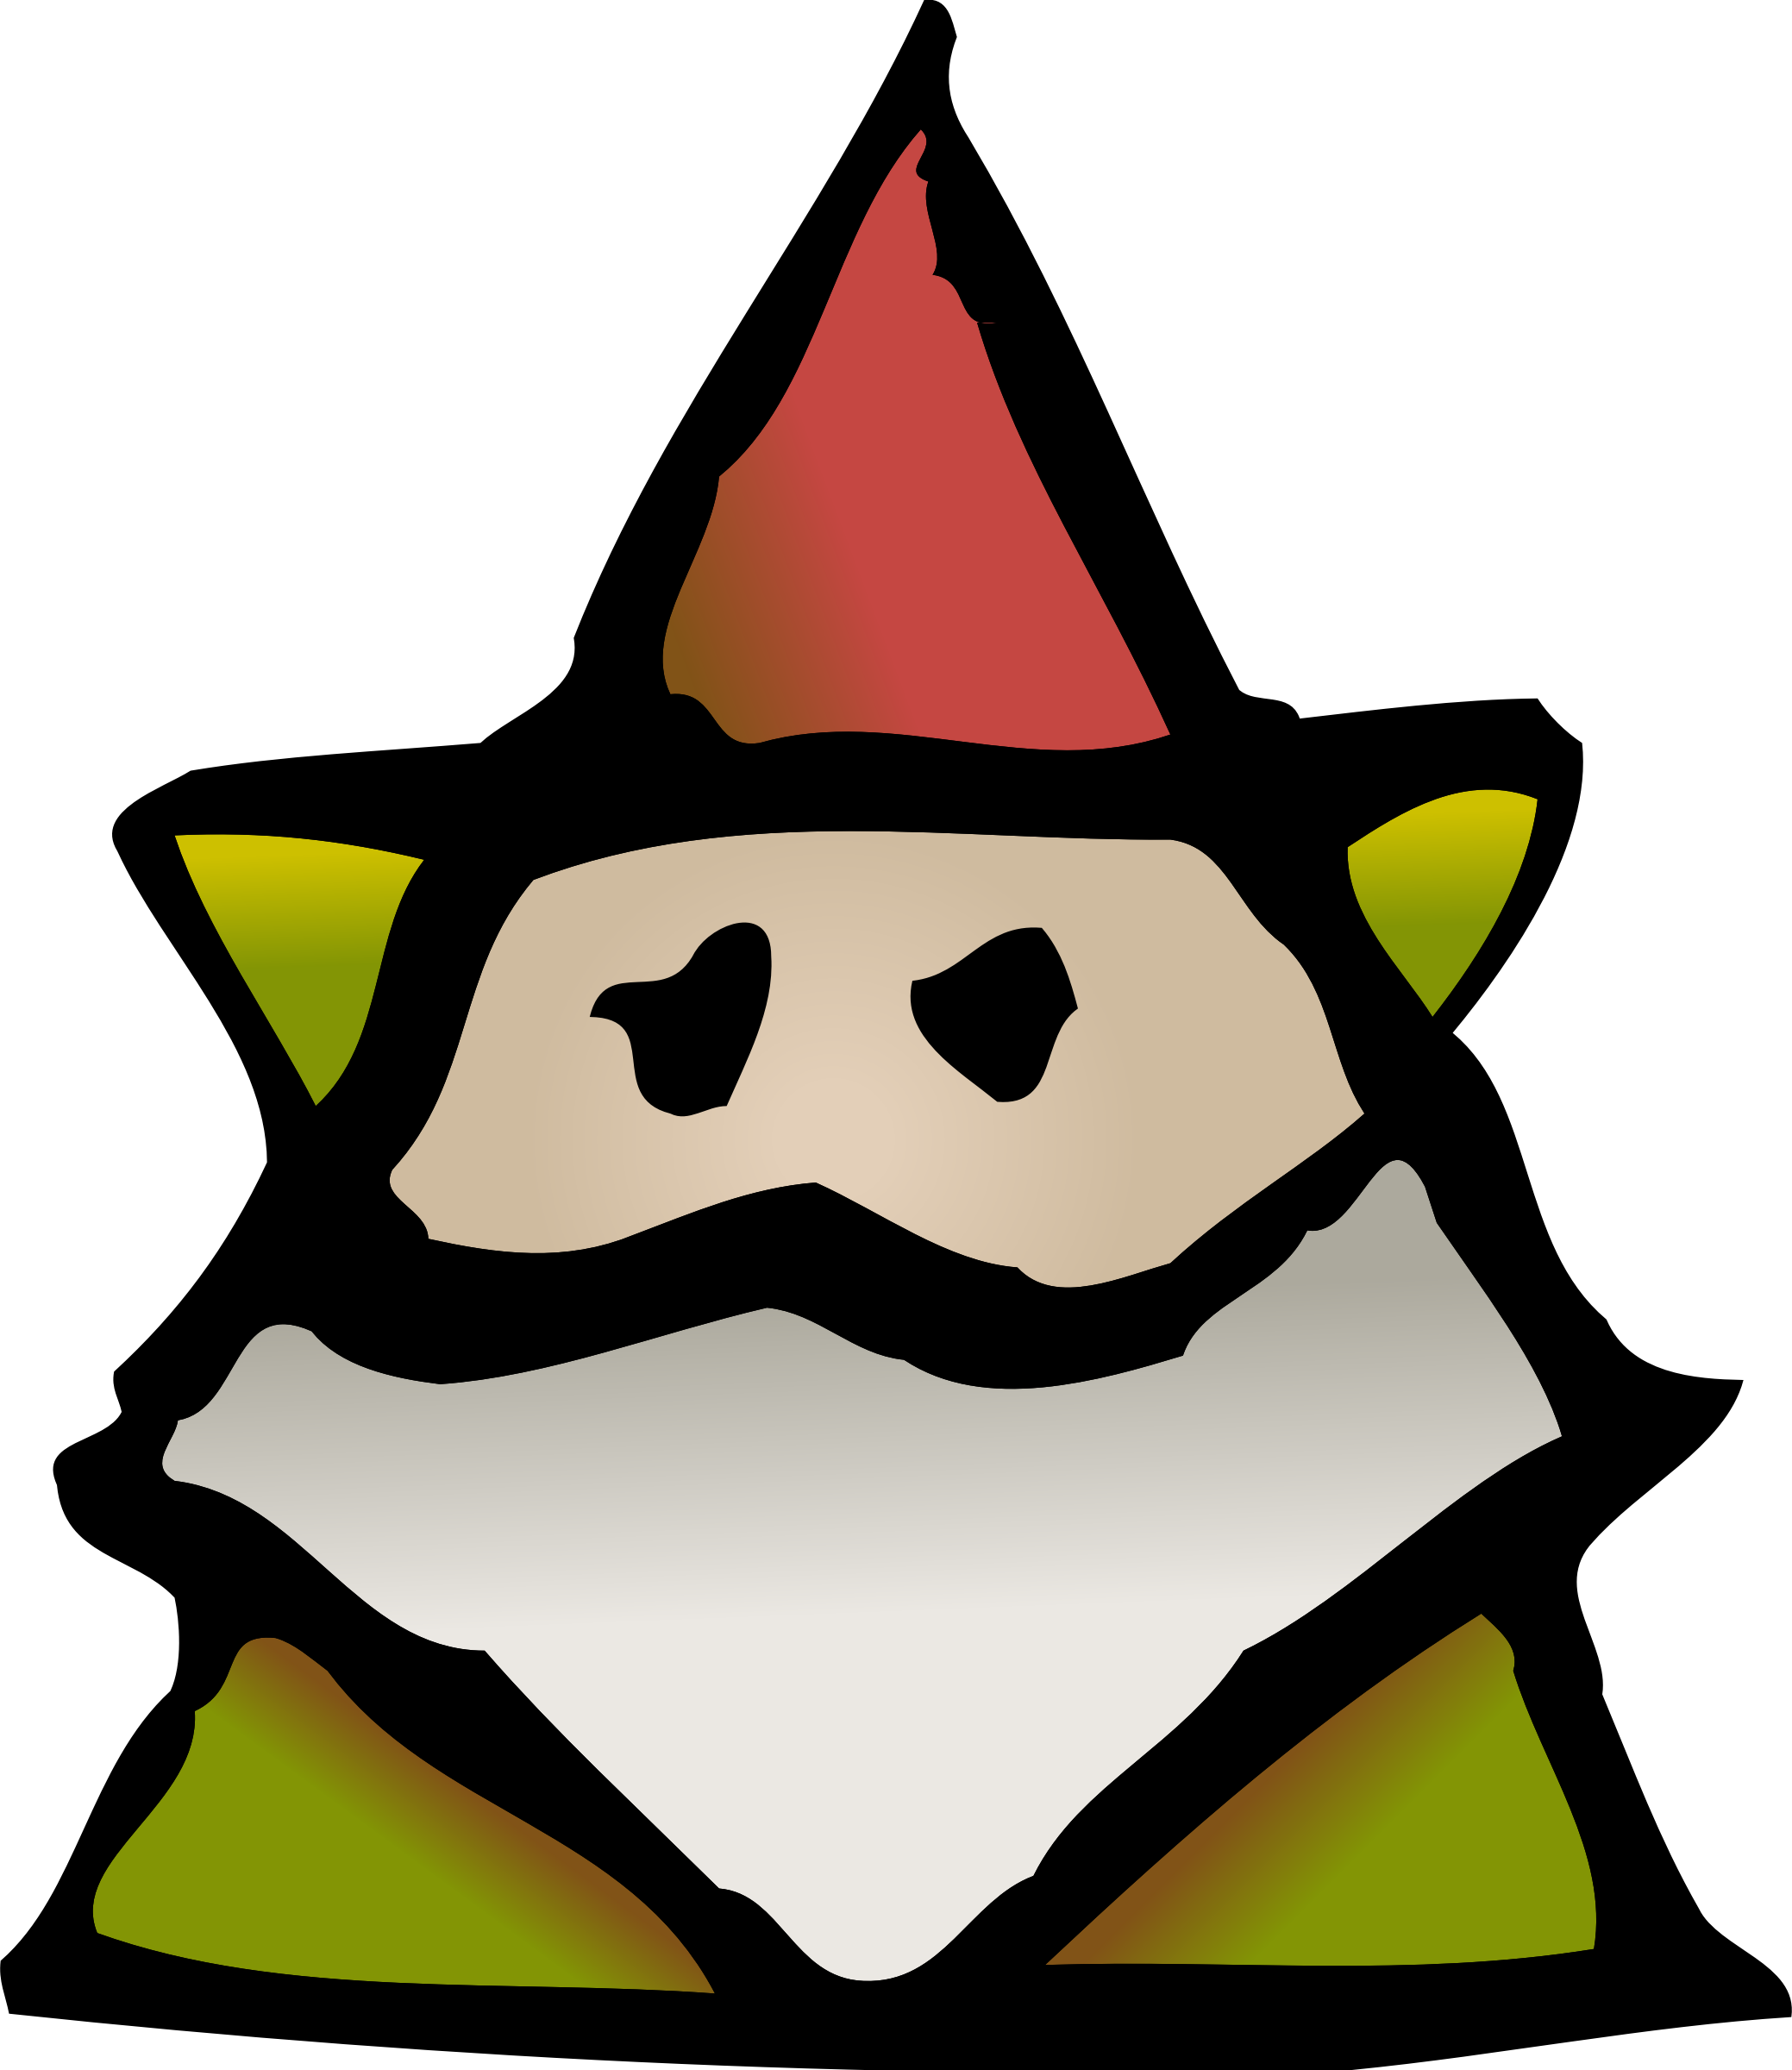 dwarf icon by Klàro